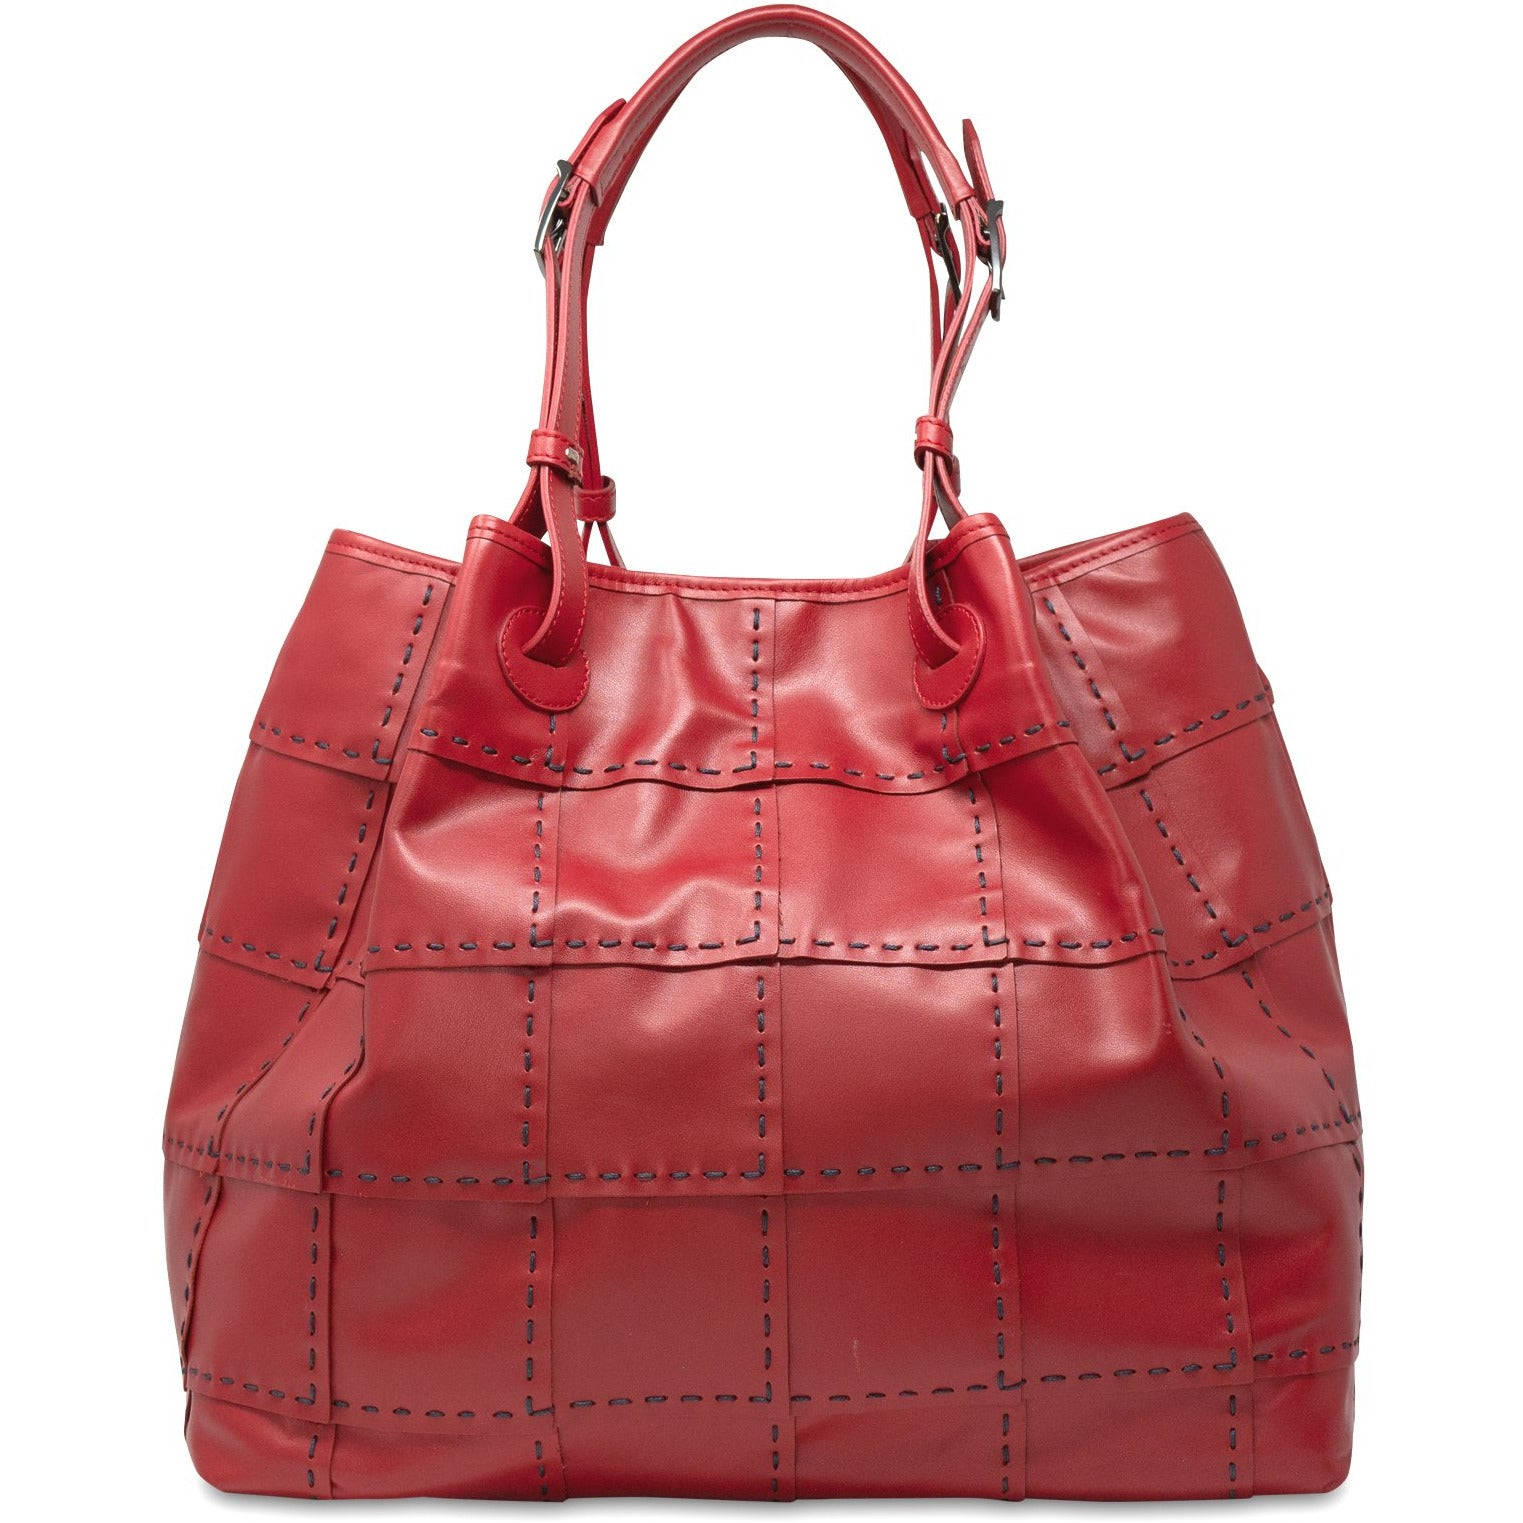 ARTSARA Tote Bag - Jennifer Tattanelli Signature Collection - Jennifer Tattanelli